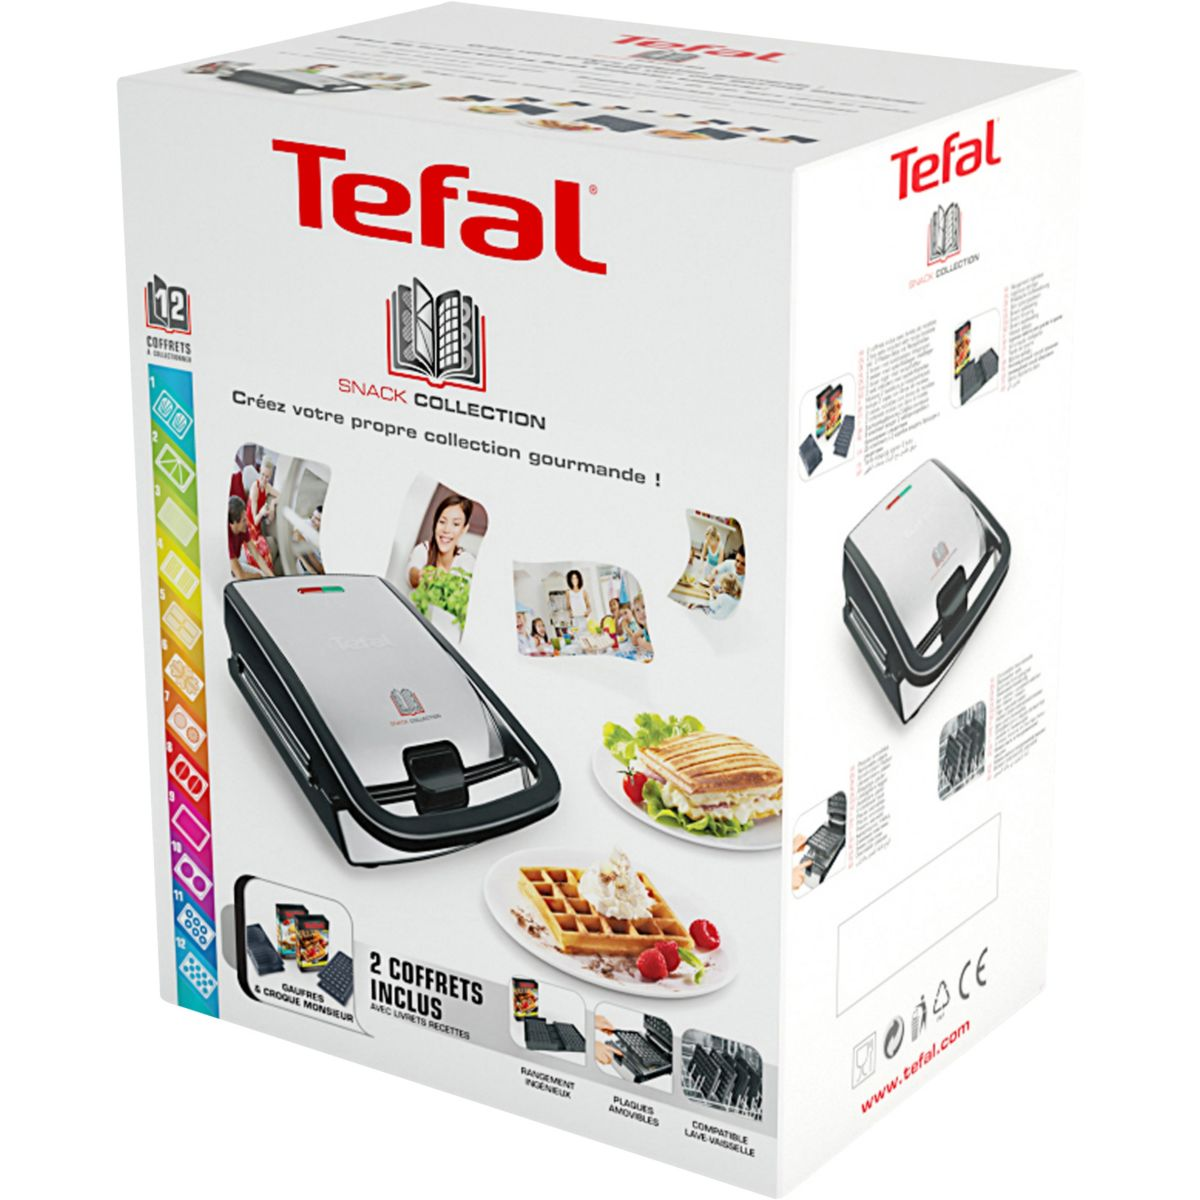 Tefal sw853d12 gaufrier snack collection comparer avec - Gaufrier tefal snack collection ...